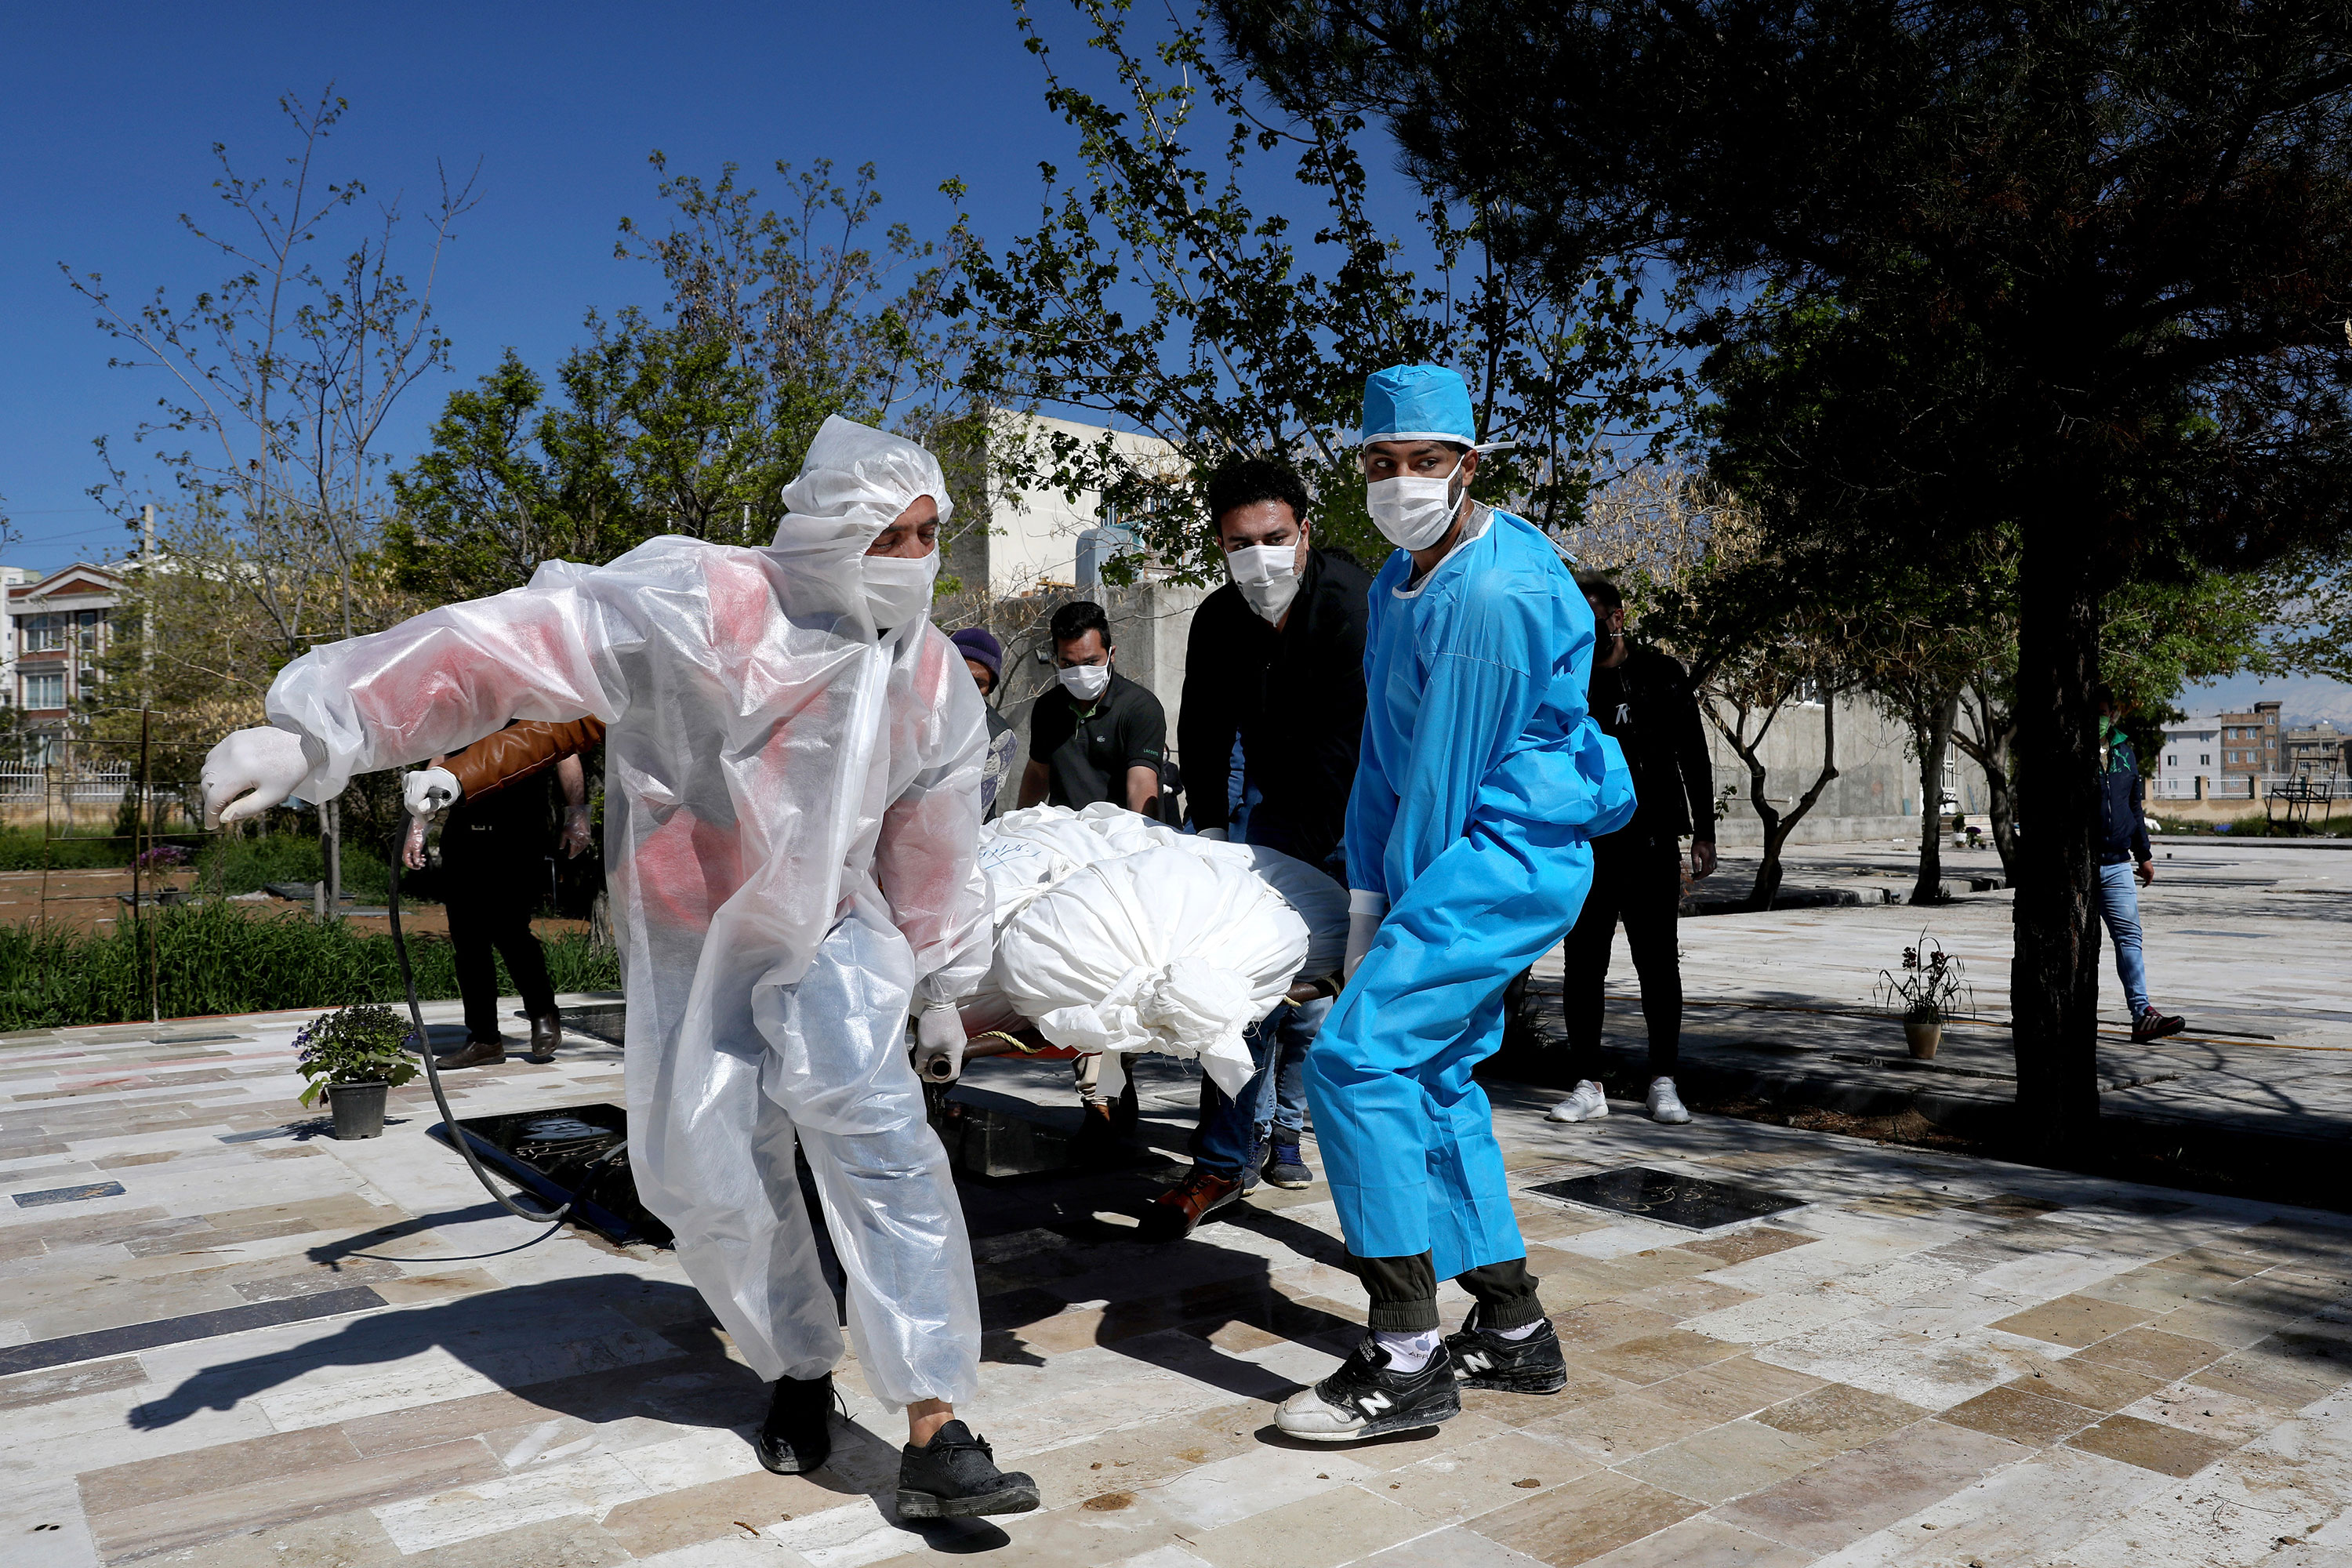 People wear protective clothing while carrying the body of a victim who died from coronavirus at a cemetery just outside Tehran, Iran, on March 30.